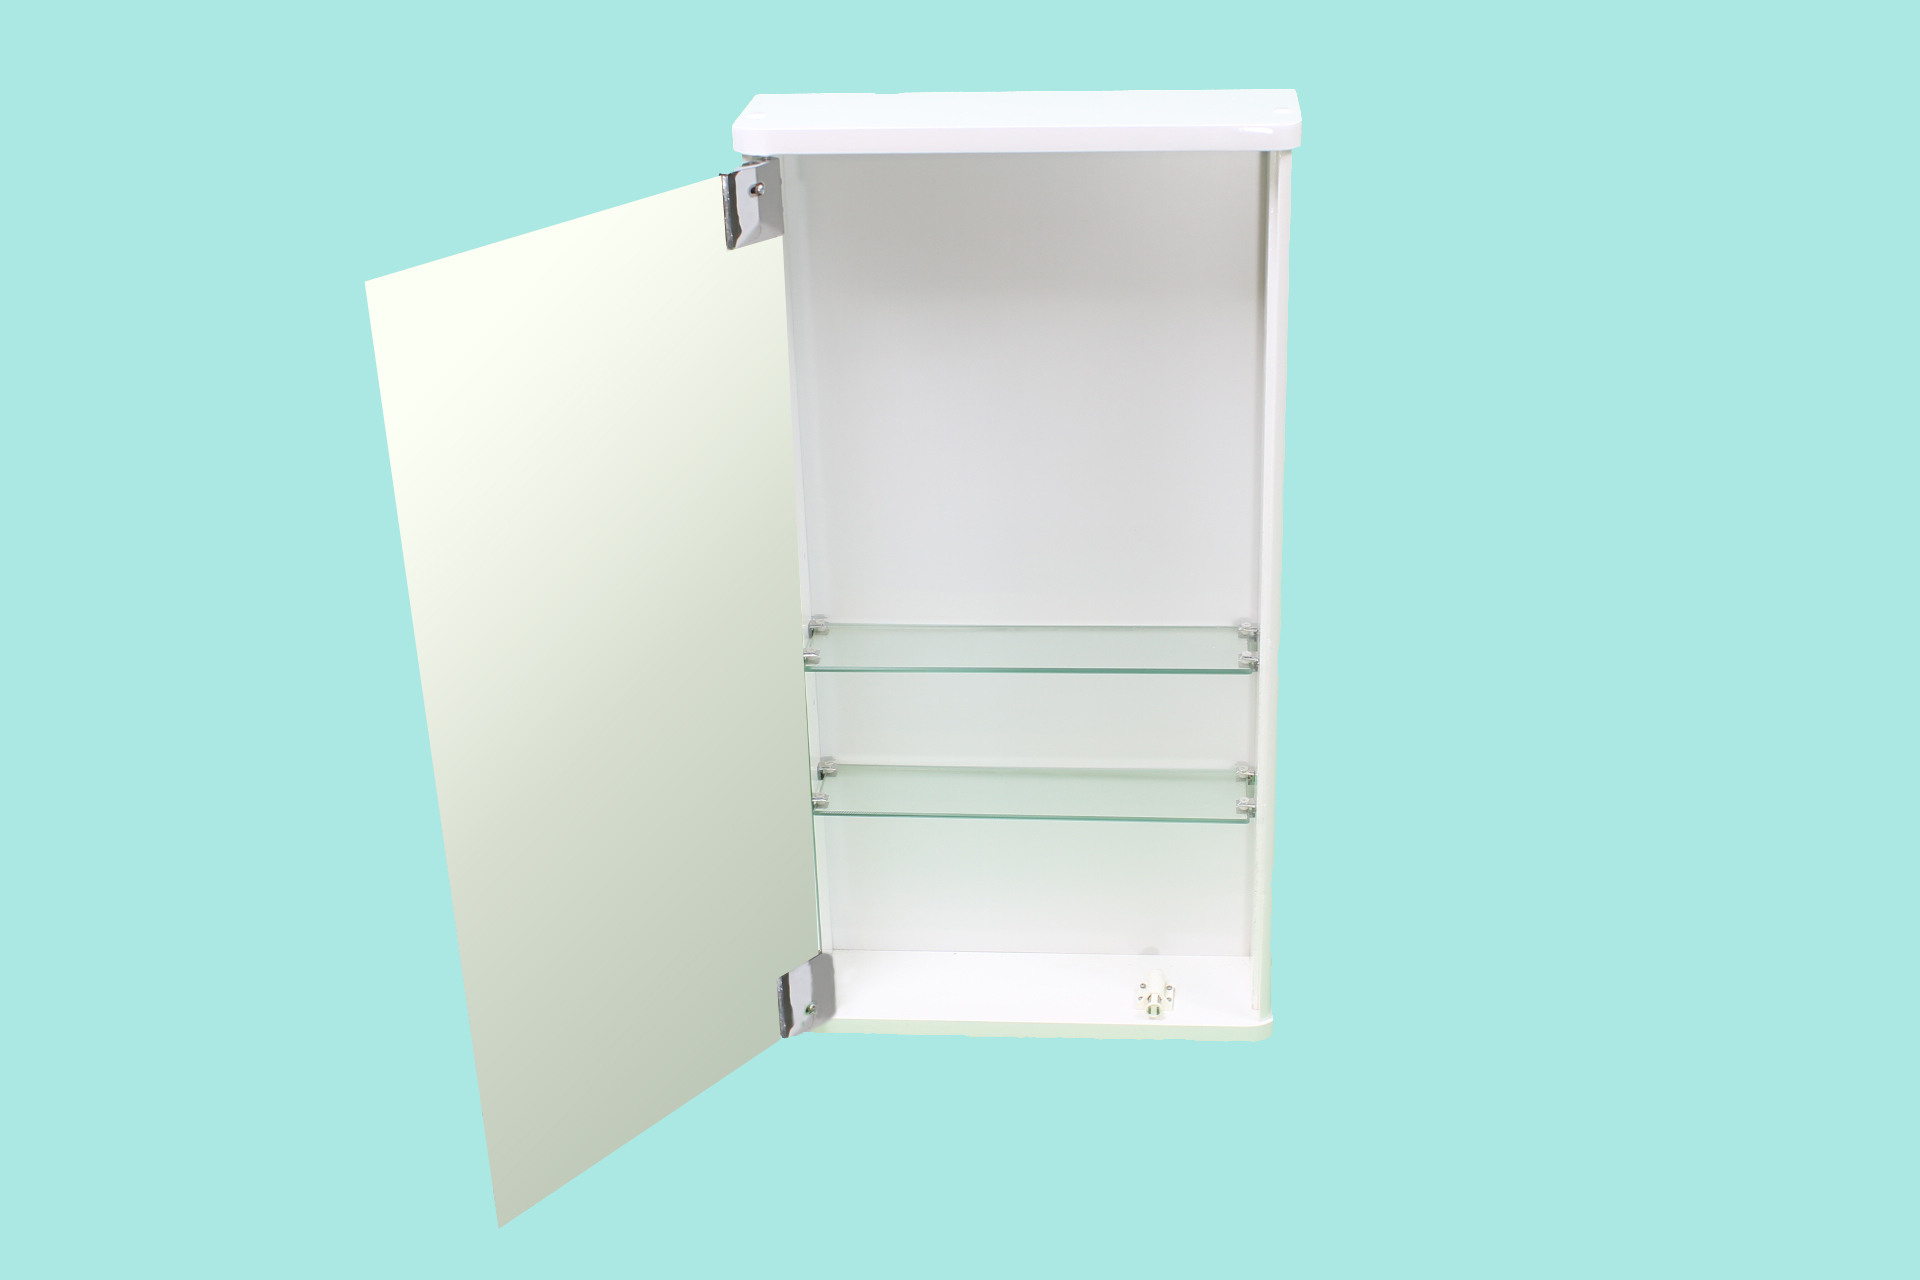 bathroom wall mirror storage cabinet slimline gloss white cloakroom